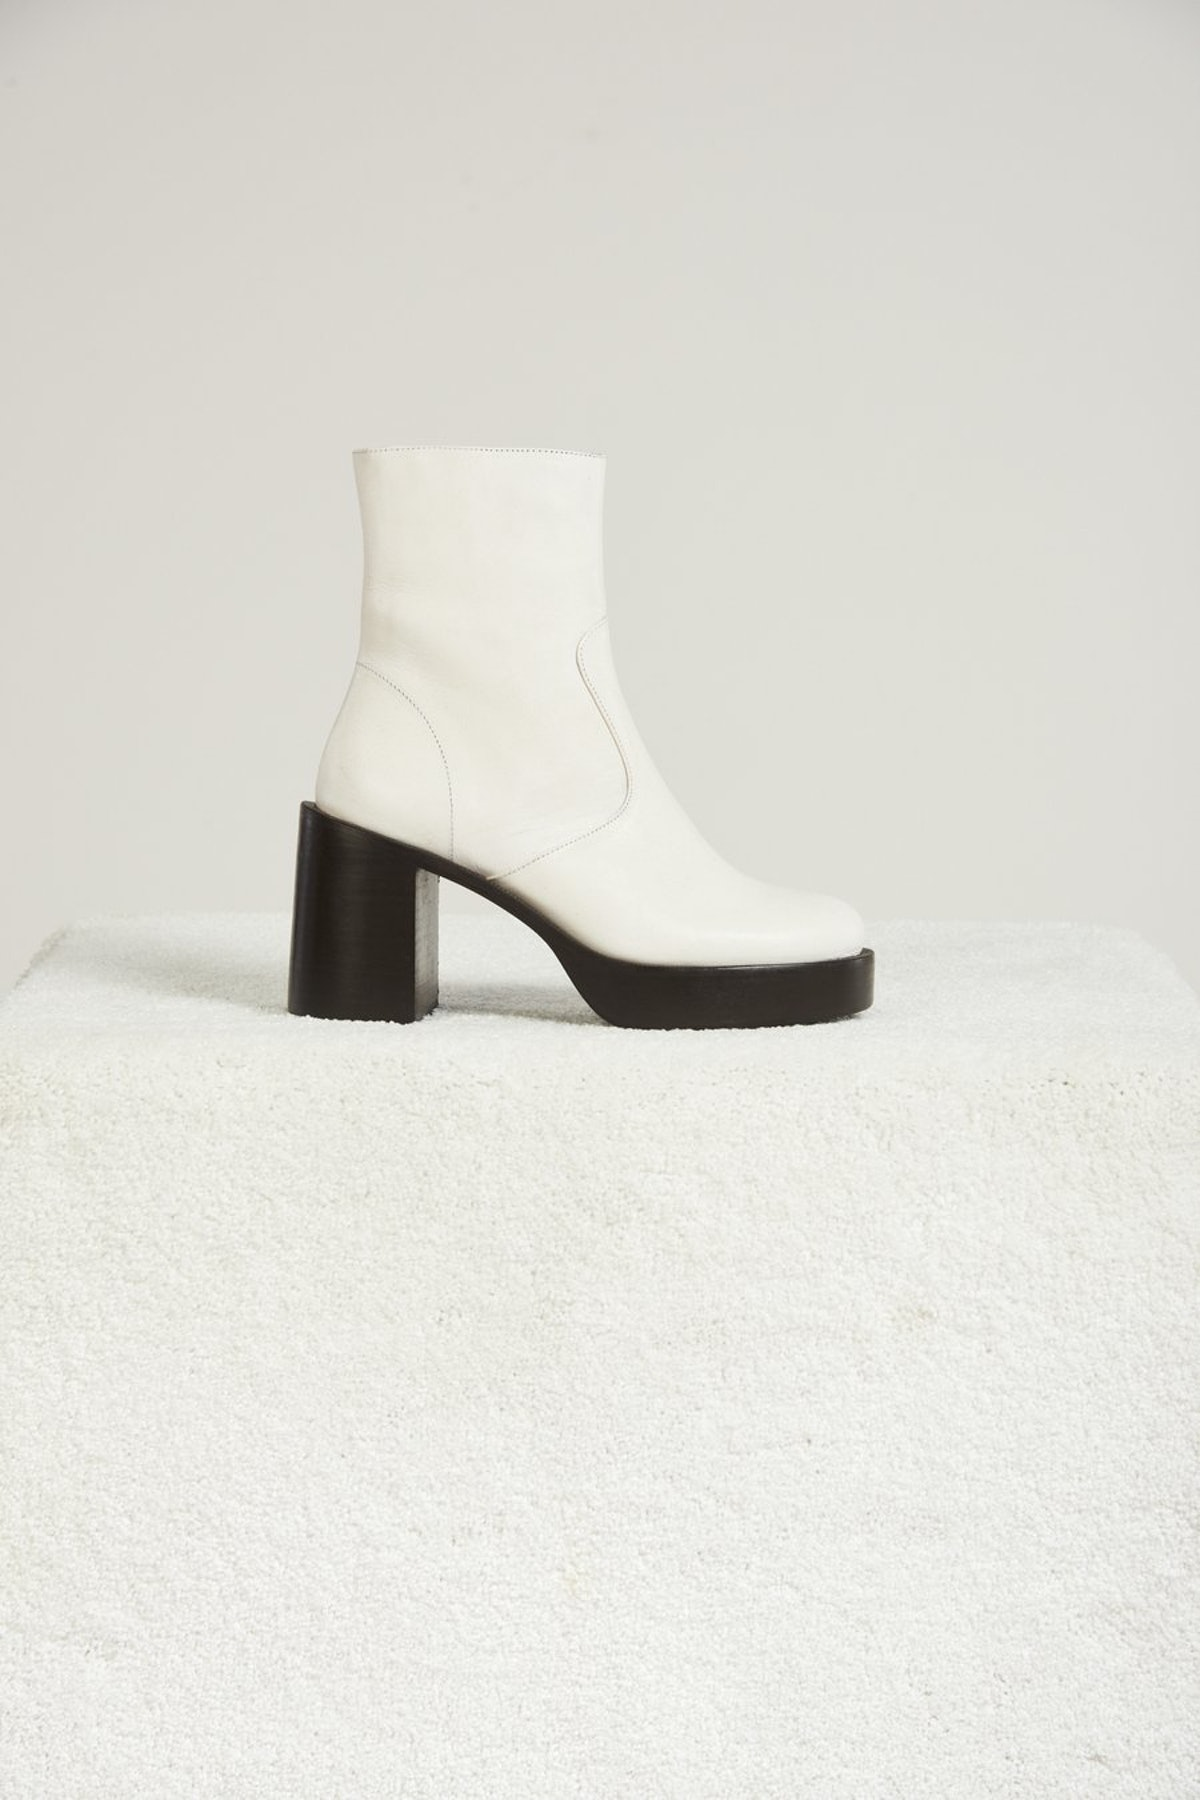 Low Raid boot in White from Simon Miller.